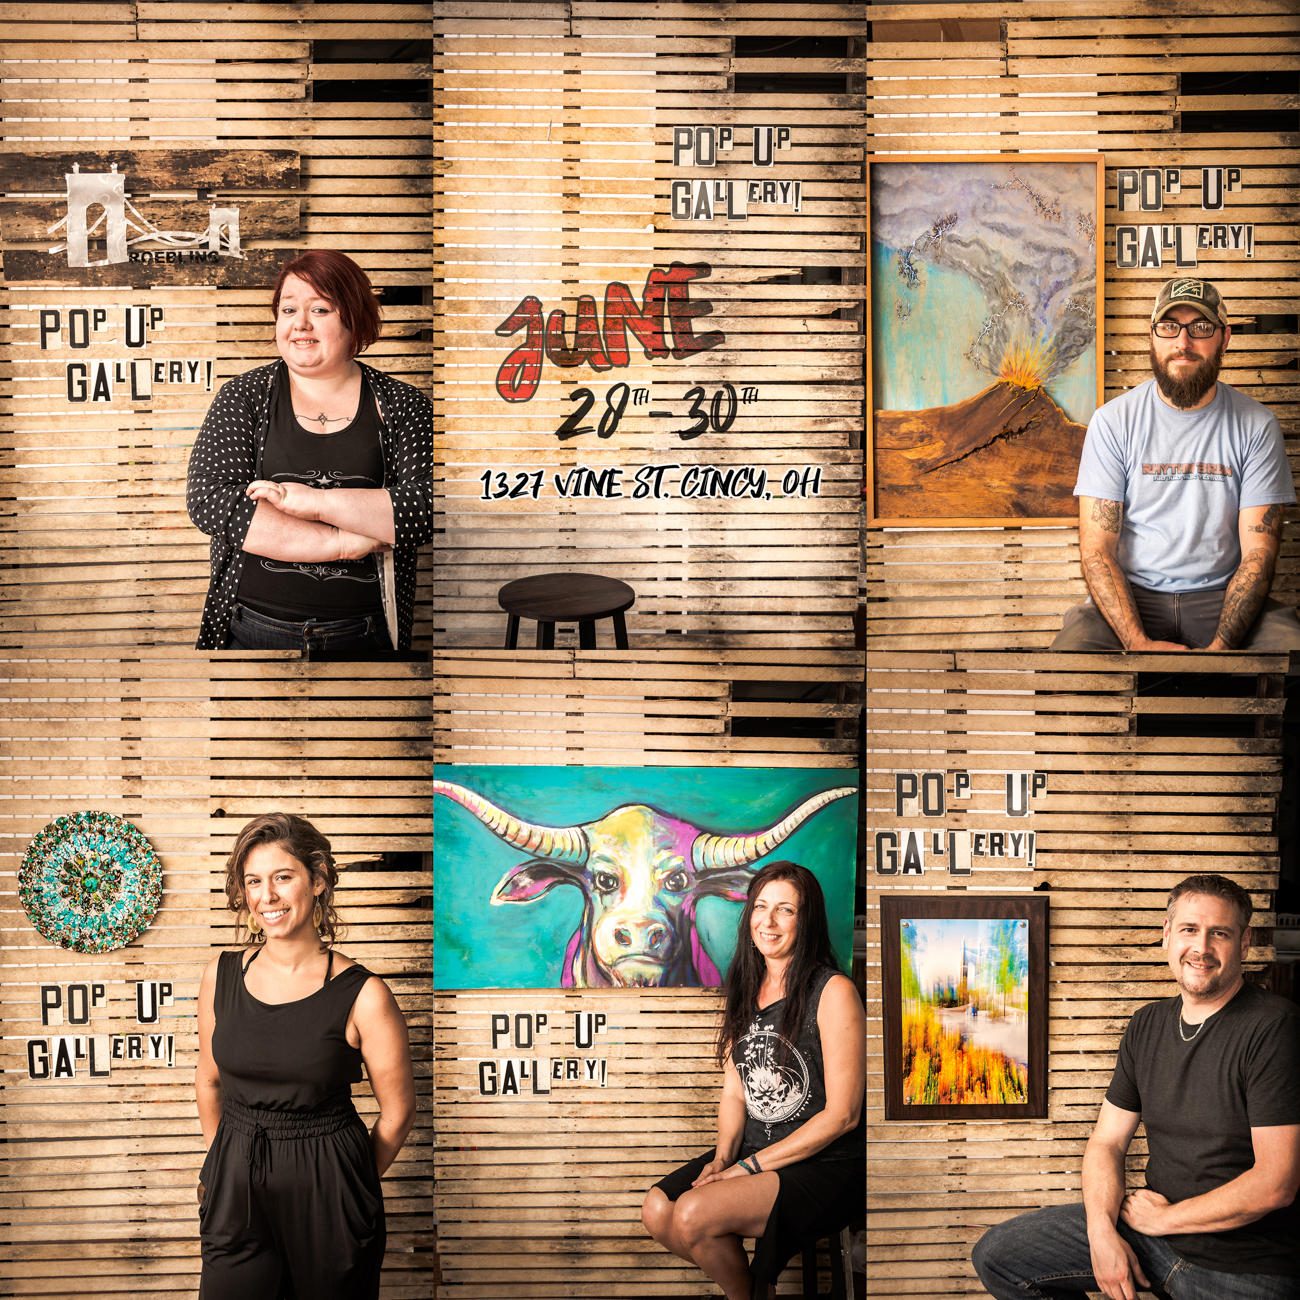 The five featured artists in the pop-up gallery include (top row from the left to right) Sara Cole with Sara Cole Art Designs, Matt Meyung, (bottom row from left to right) Di Del Pilar with Wisdom Tree, Linnoir Rich with Art by Linnoir, and Ryan Hill with ImageNationS Photography.{ }You can see their works at Vine Street's Brick OTR on the weekend of June 28-29 from 11 AM-11 PM, and June 30th from 11 AM-6 PM. / Image: Ryan Hill via ImageNationS Photography) // Published: 6.26.19